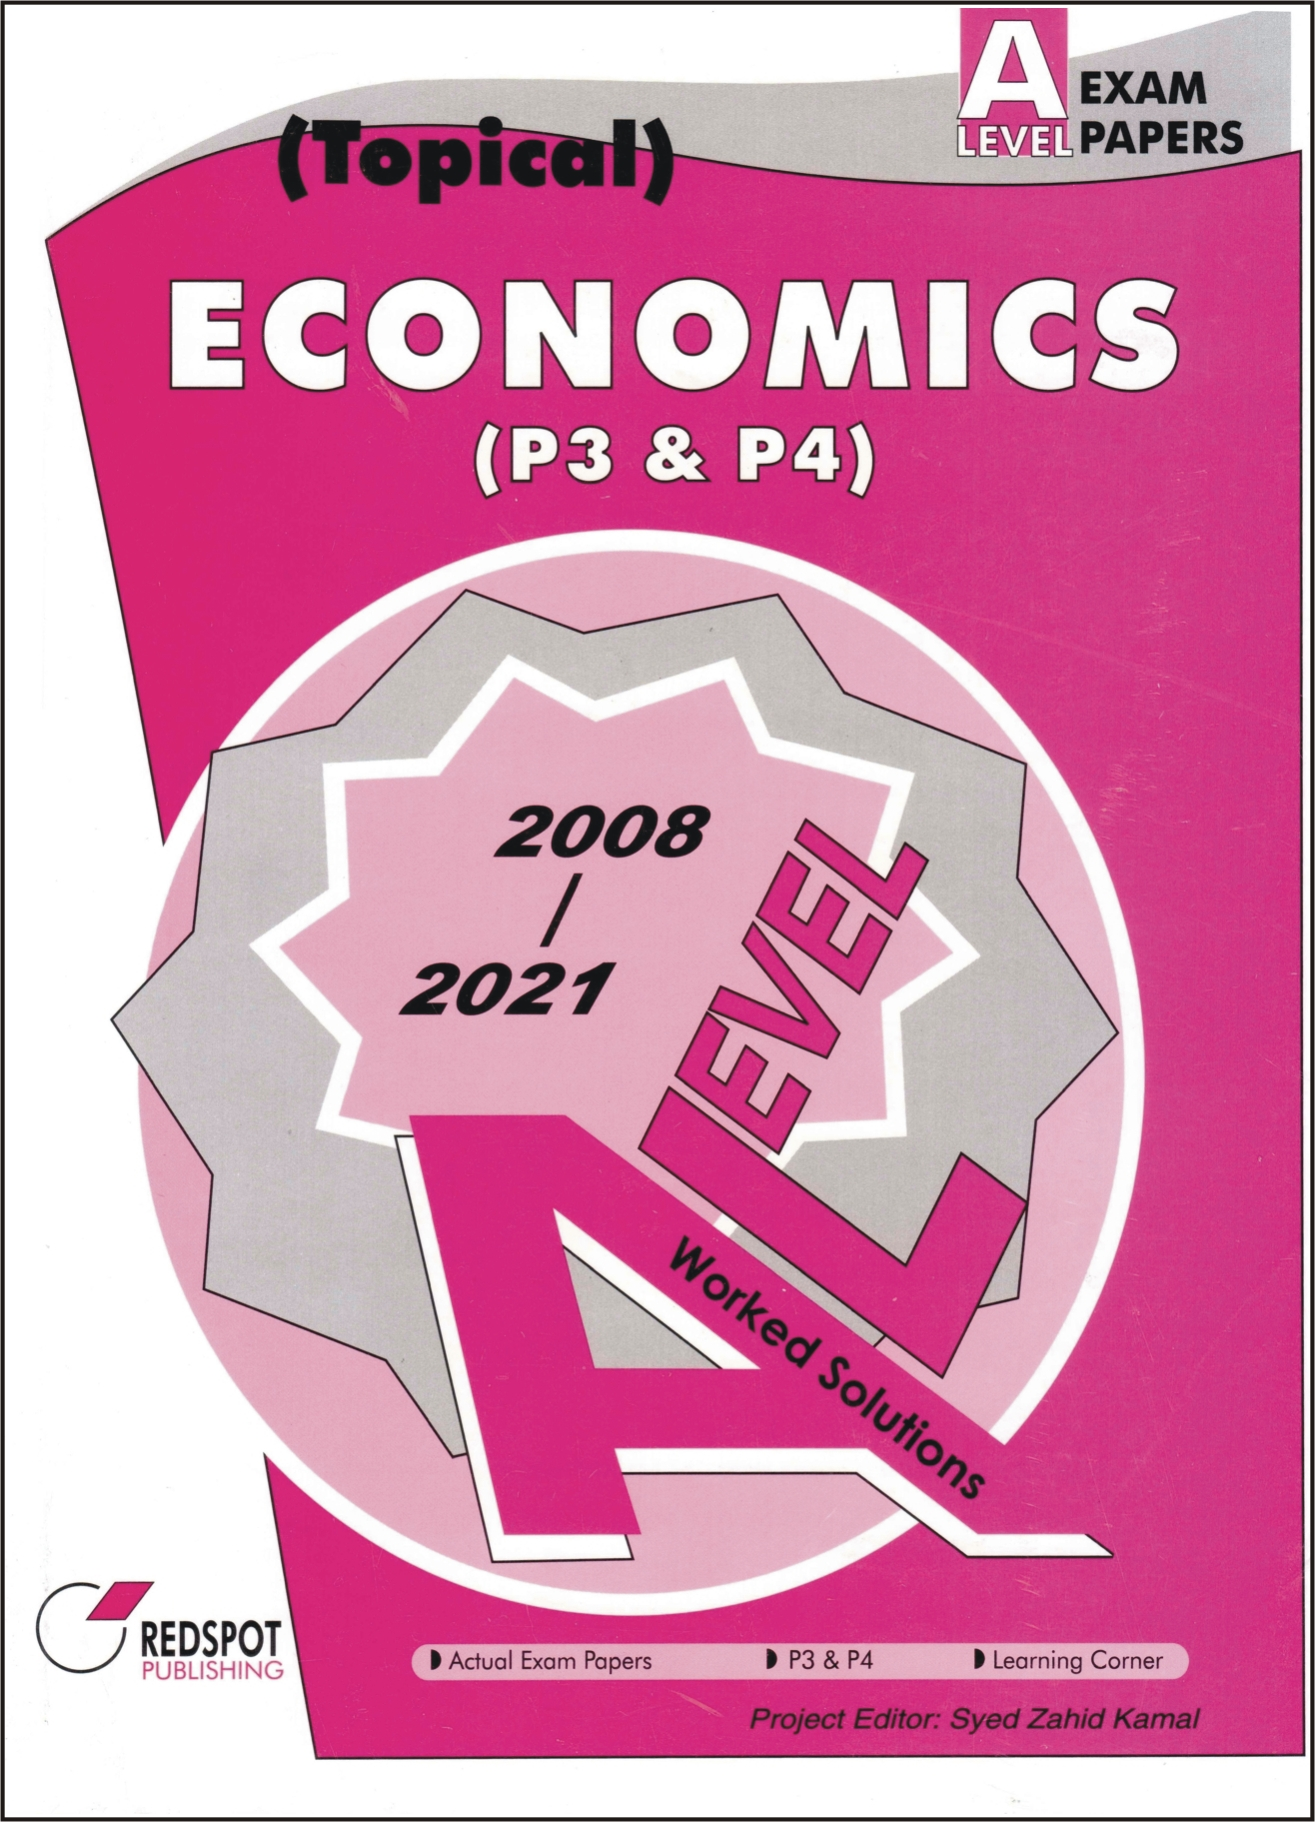 Accounting grd11 ebook array economics p1 june 2014 ebook rh economics p1 june 2014 ebook bsop us fandeluxe Choice Image